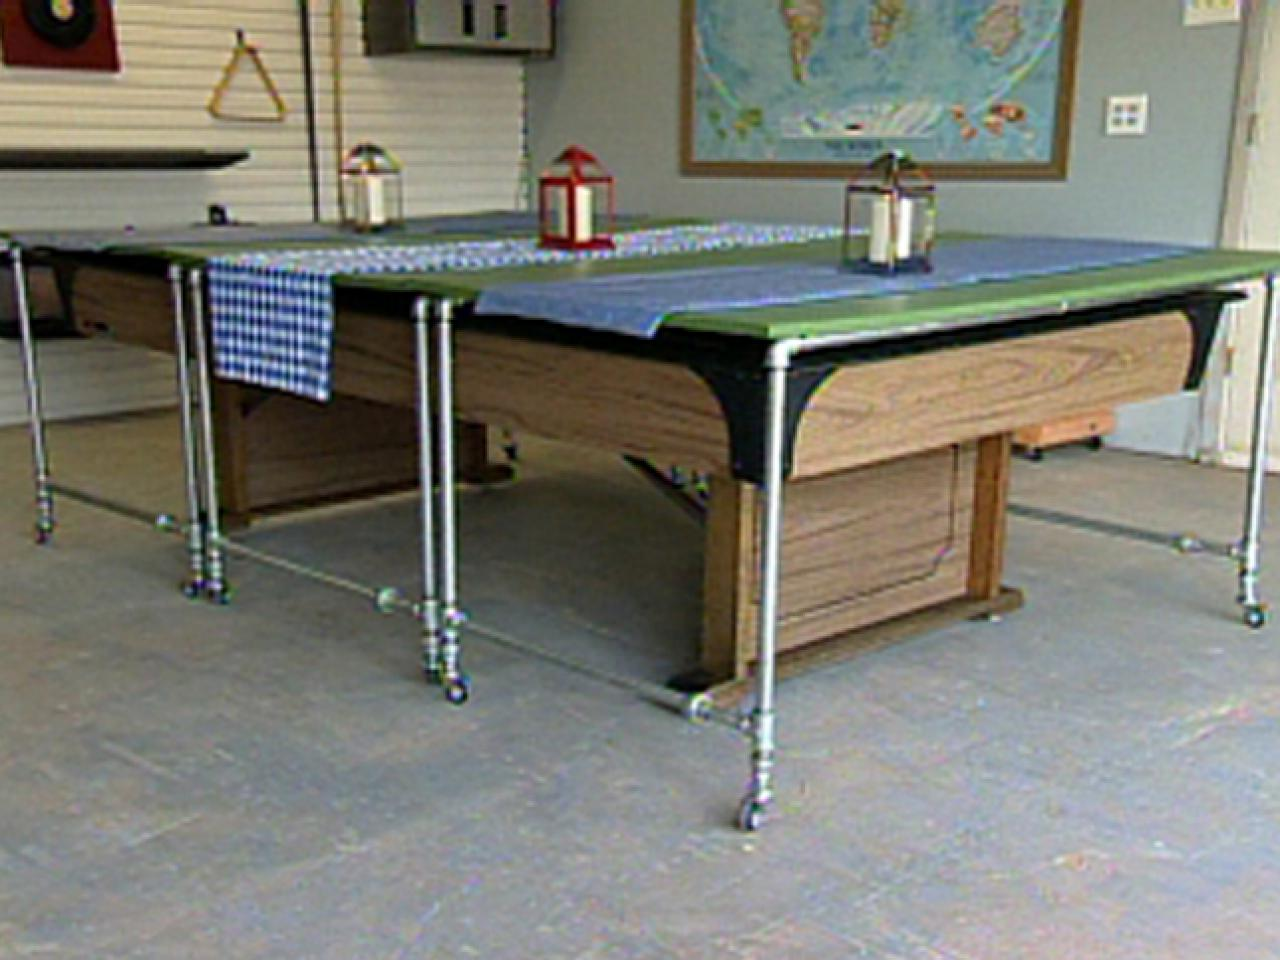 How To Build Rolling Pool Table Covers HGTV - Buy my pool table